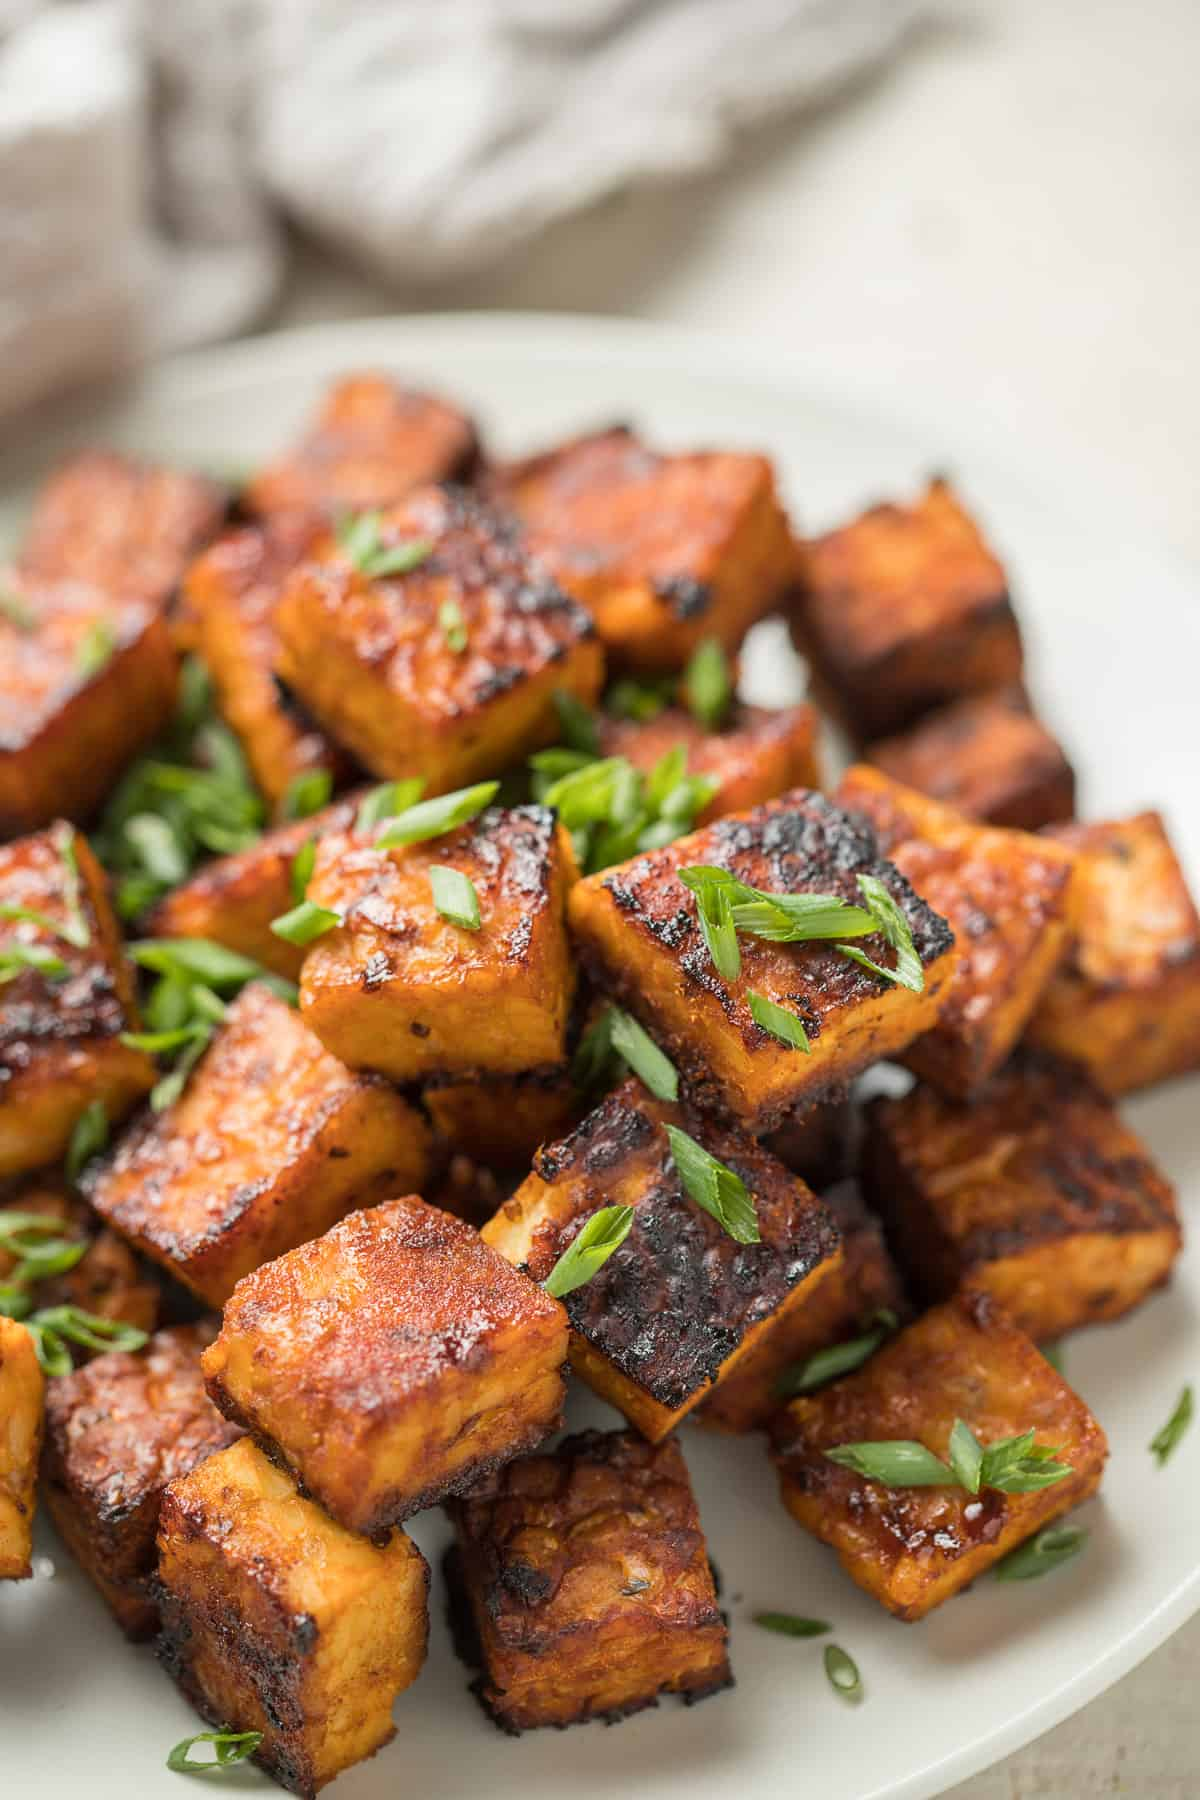 Close up of Smoky Marinated Tempeh on a plate with chives.